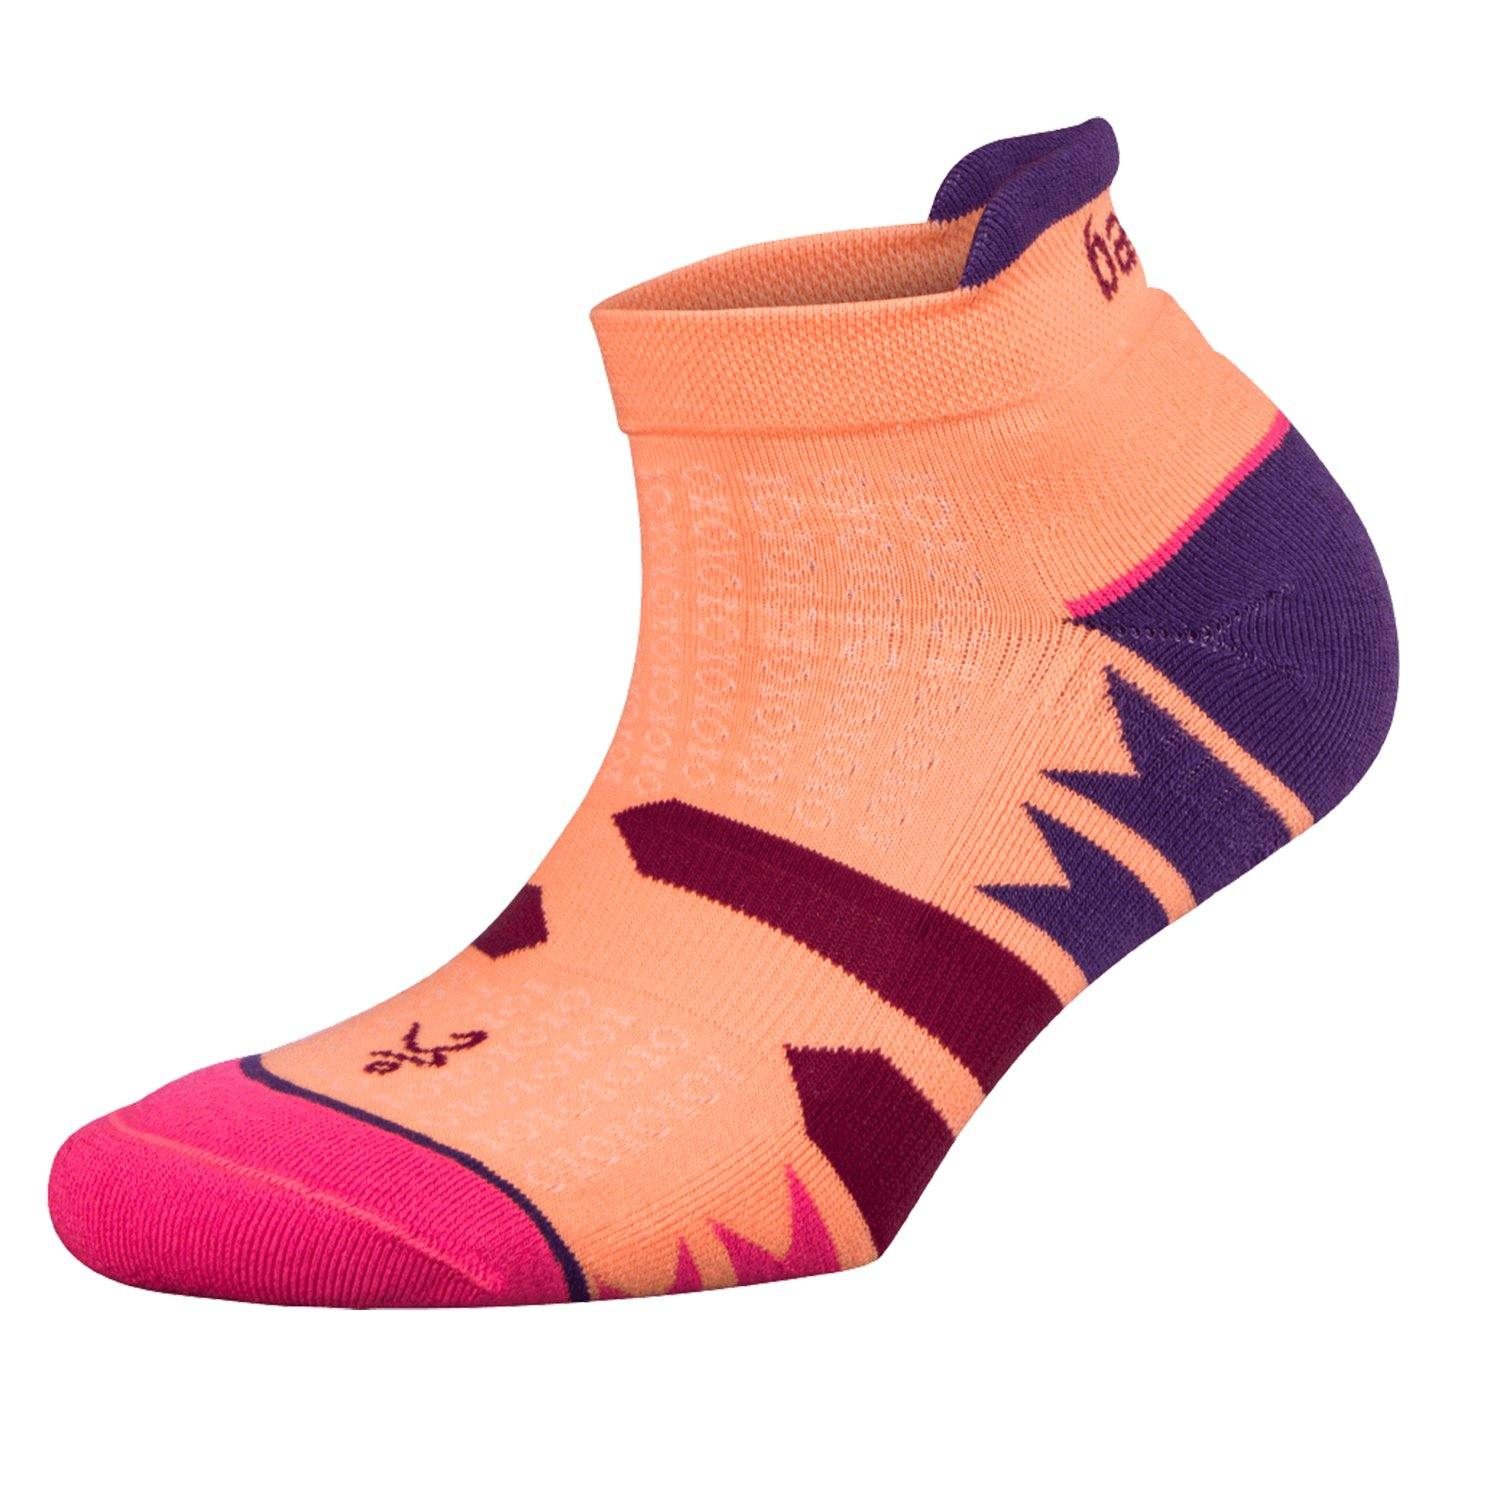 Balega Enduro Women's No Show Socks - Purple/Peach